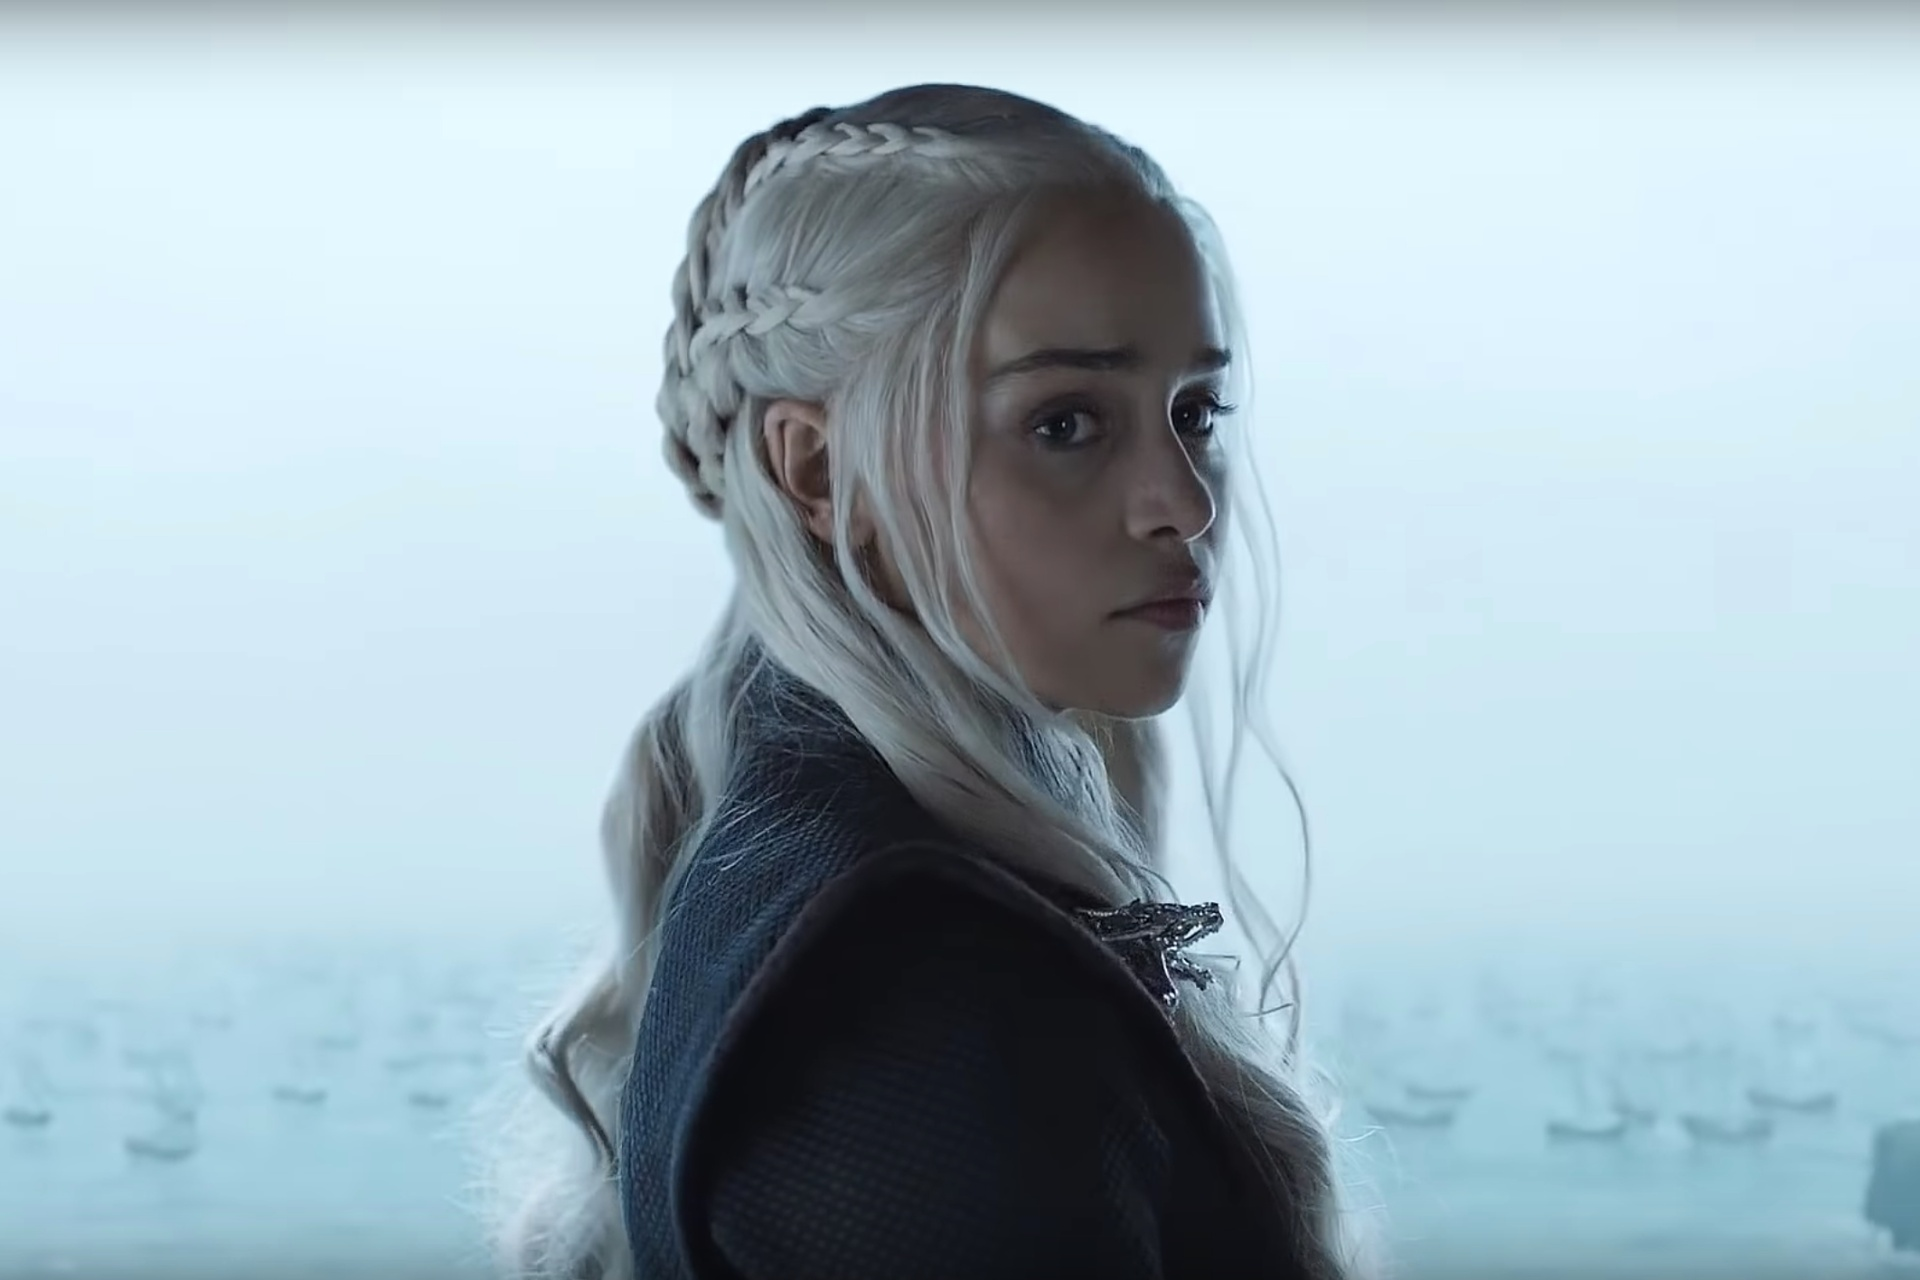 Daenerys Targaryen Is NOT Basic, So Let's Stop Treating Her Like She Is